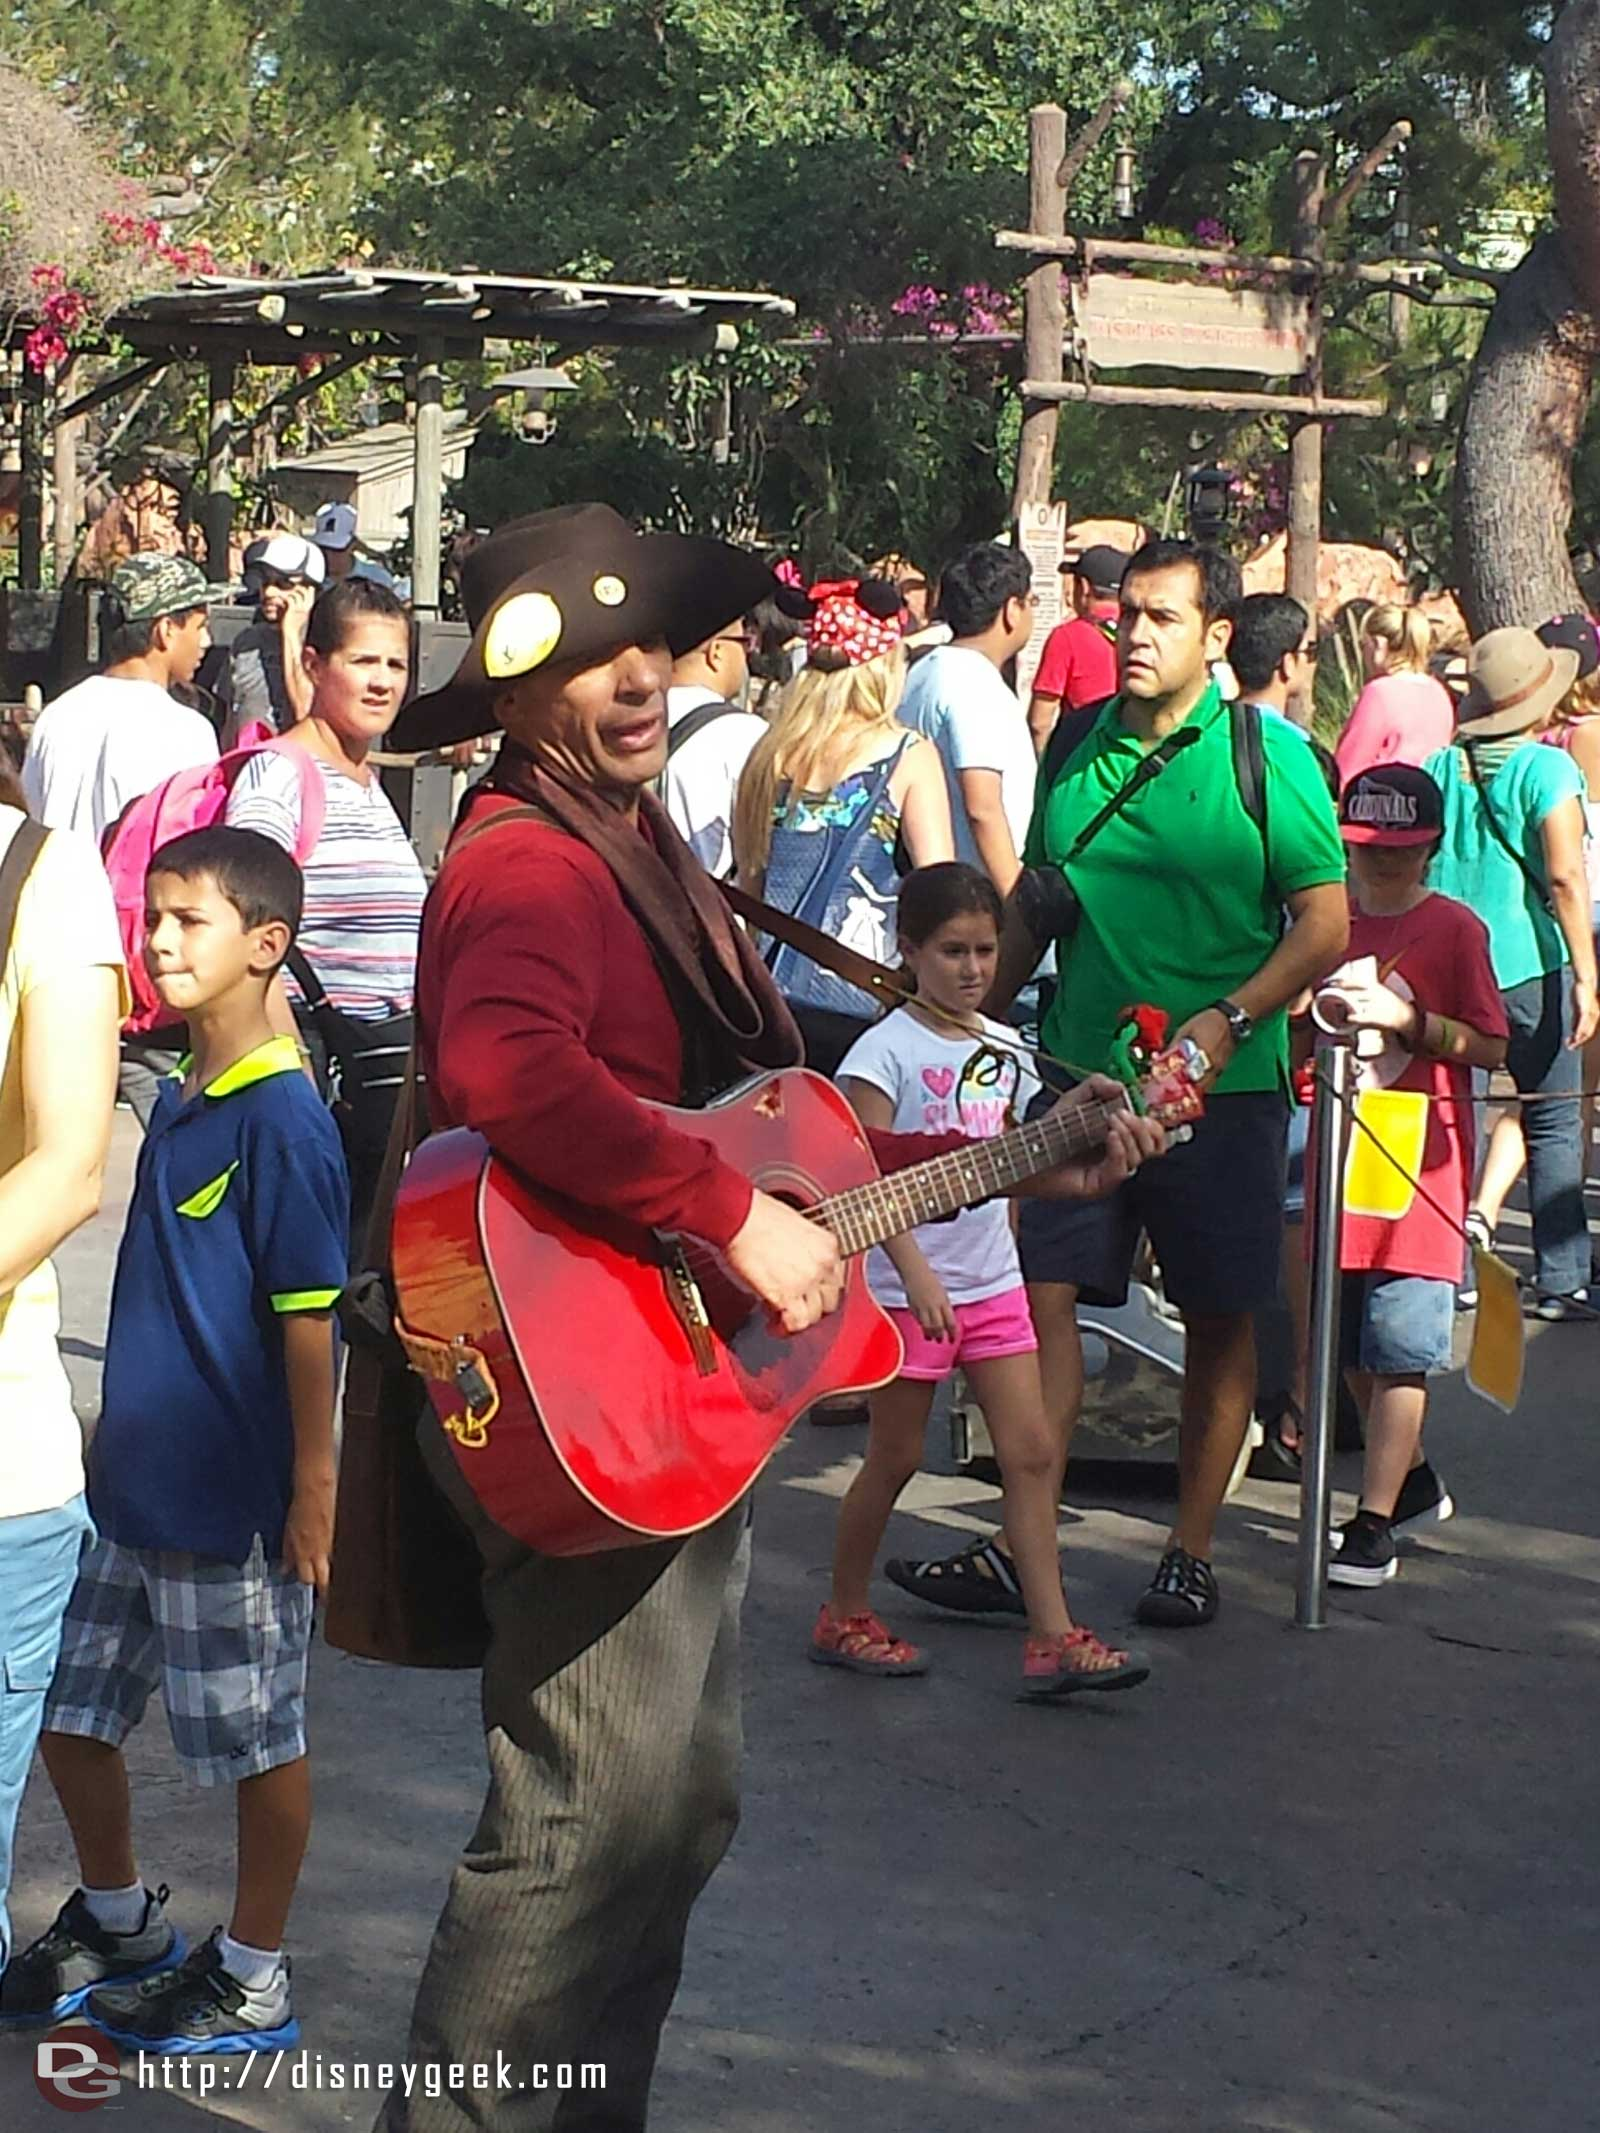 A Billy spotted in Frontierland taking part in the Legends of Frontierland: Gold Rush (his western name is Billy)